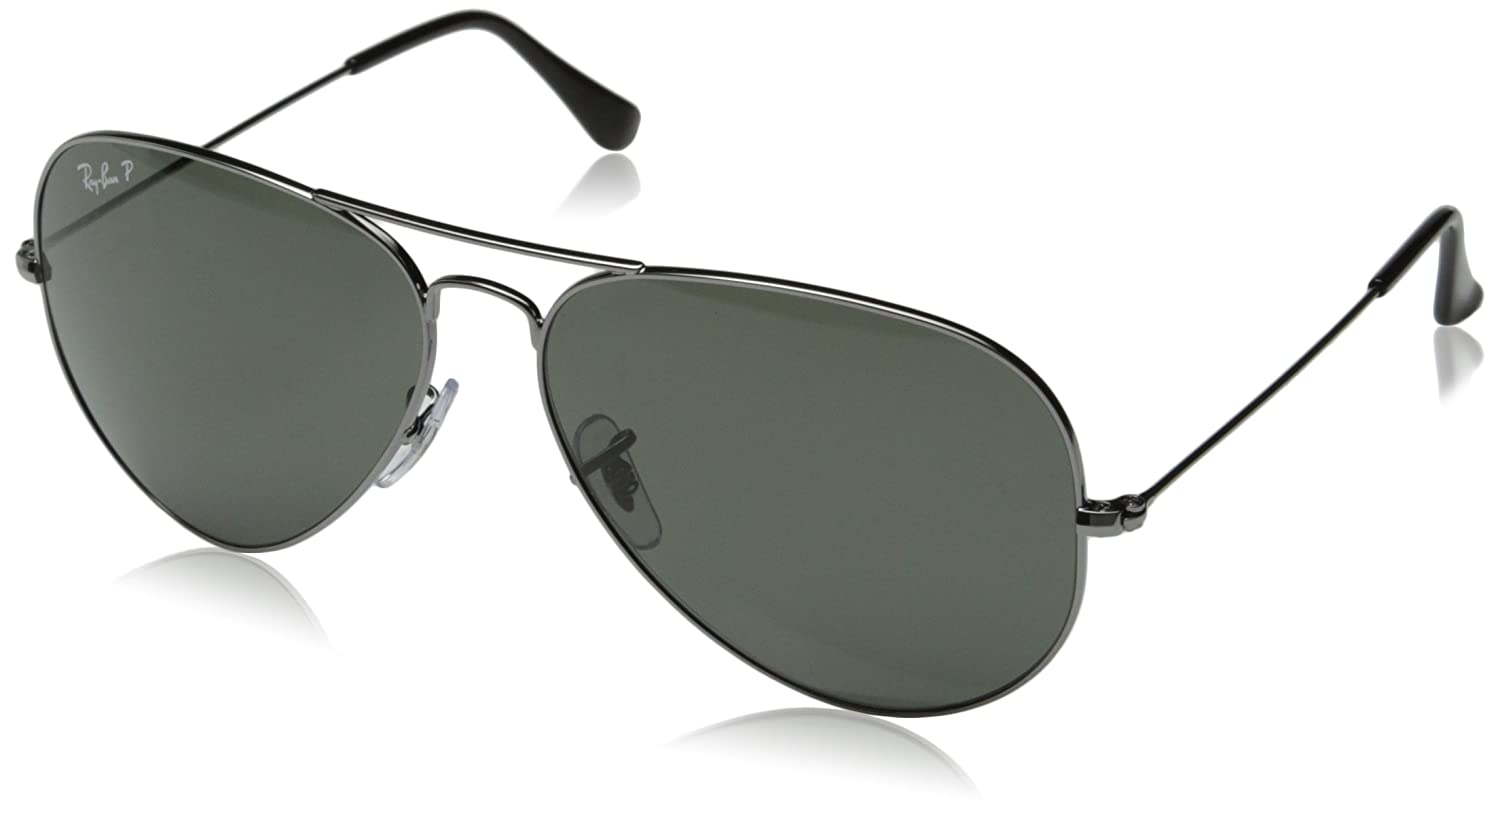 292275e39e53 Amazon.com  Ray-Ban 3025 Aviator Large Metal Non-Mirrored Polarized  Sunglasses  Clothing